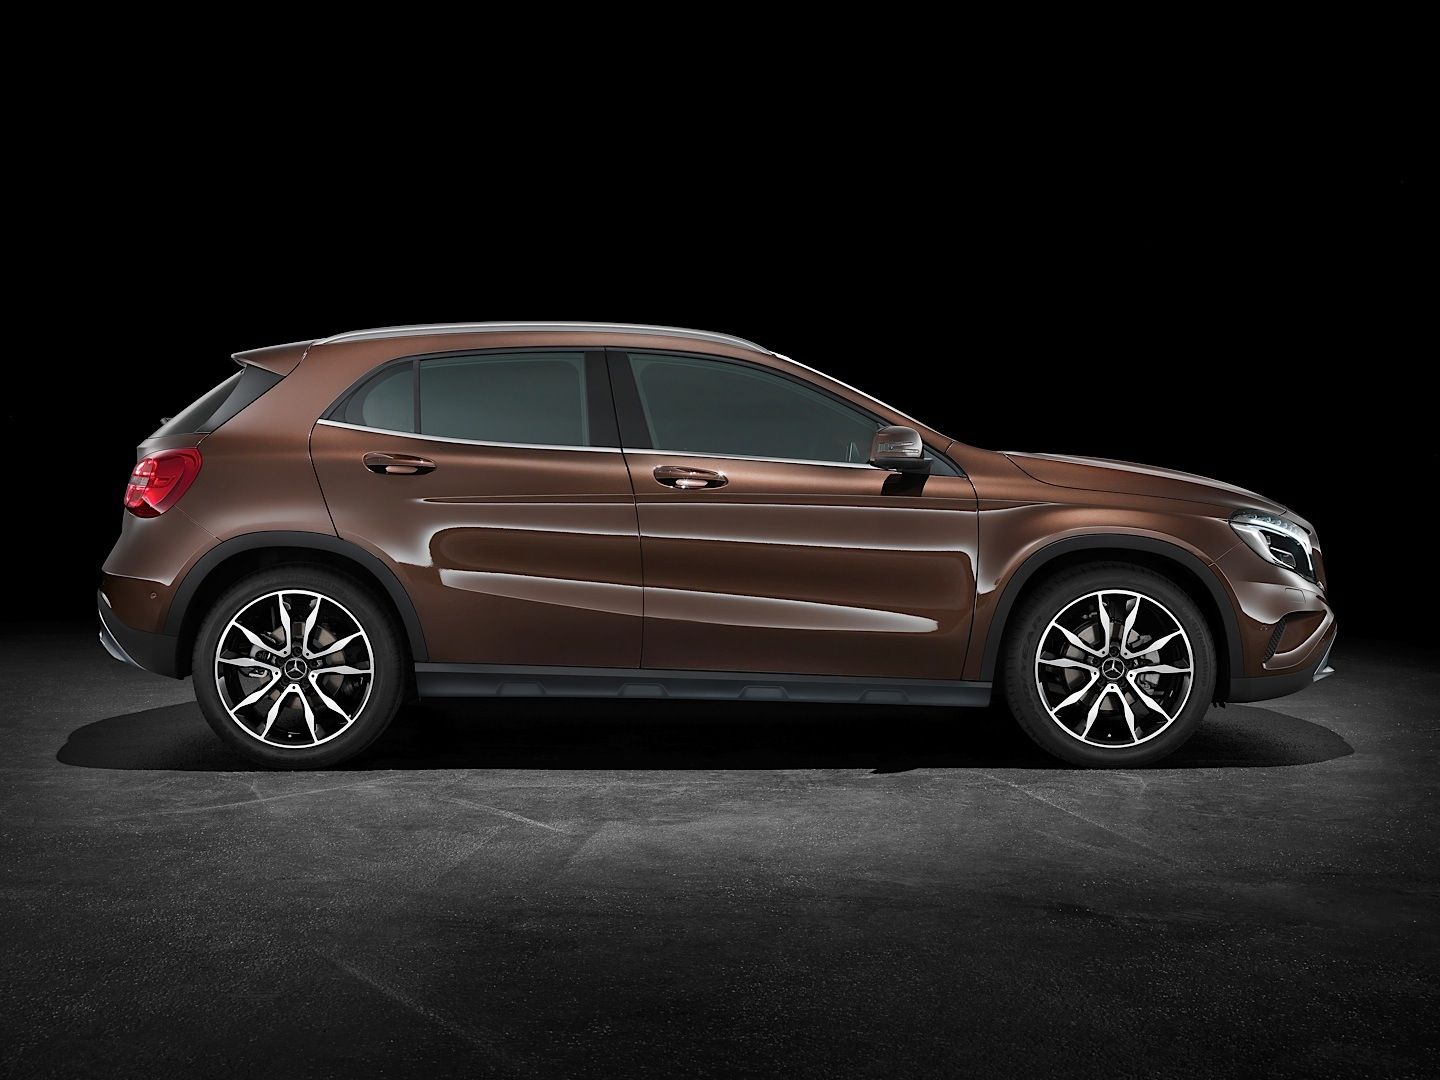 mercedes benz gla 250 gets reviewed by road and track autoevolution. Black Bedroom Furniture Sets. Home Design Ideas